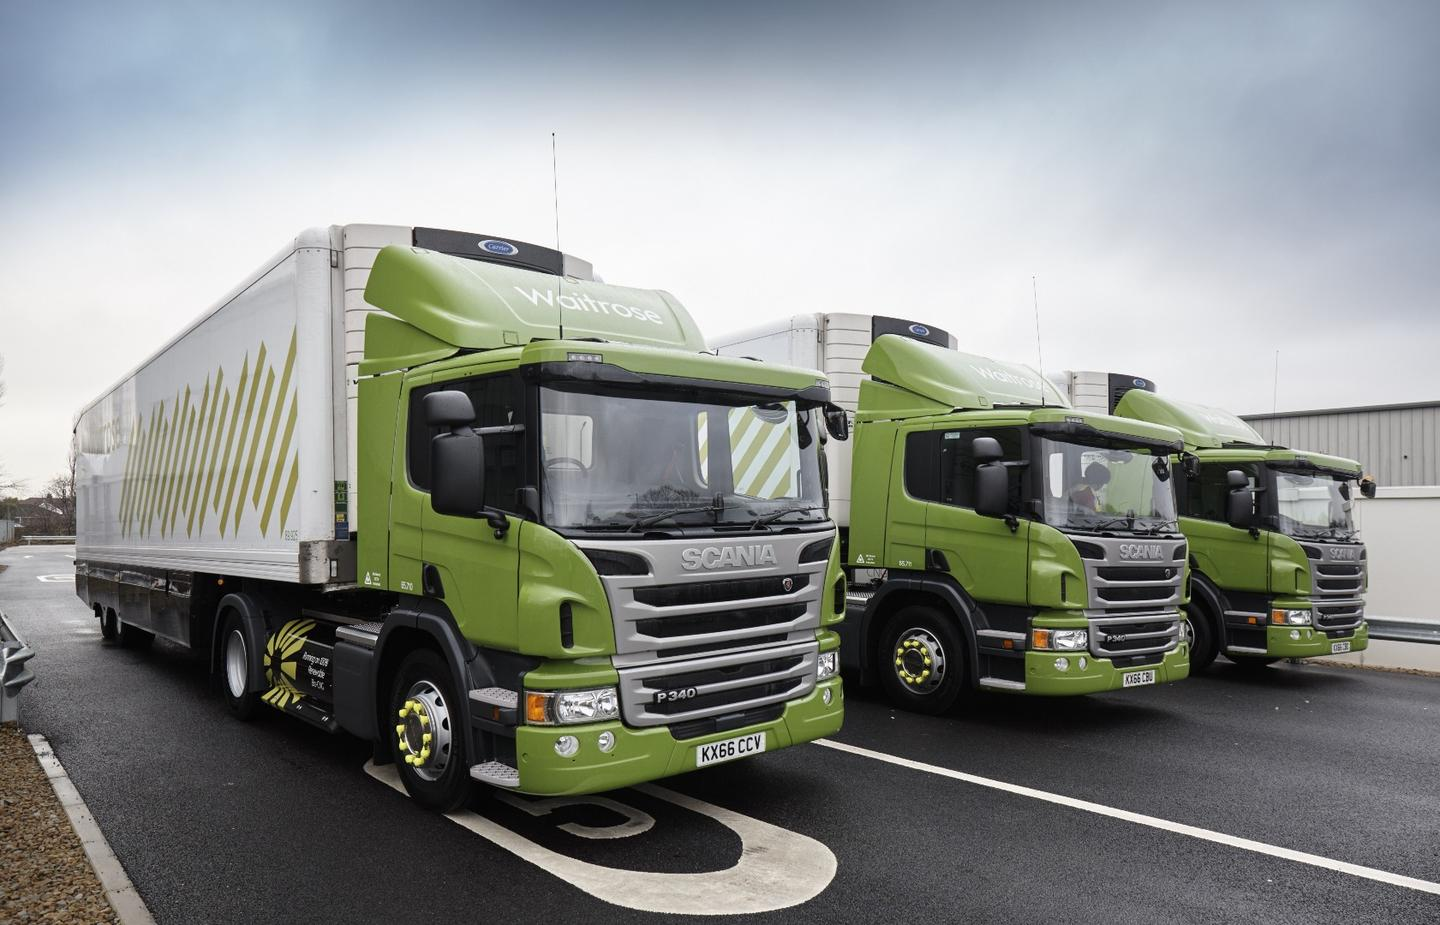 The fleet of CNG trucks being used by Waitrose for deliveries